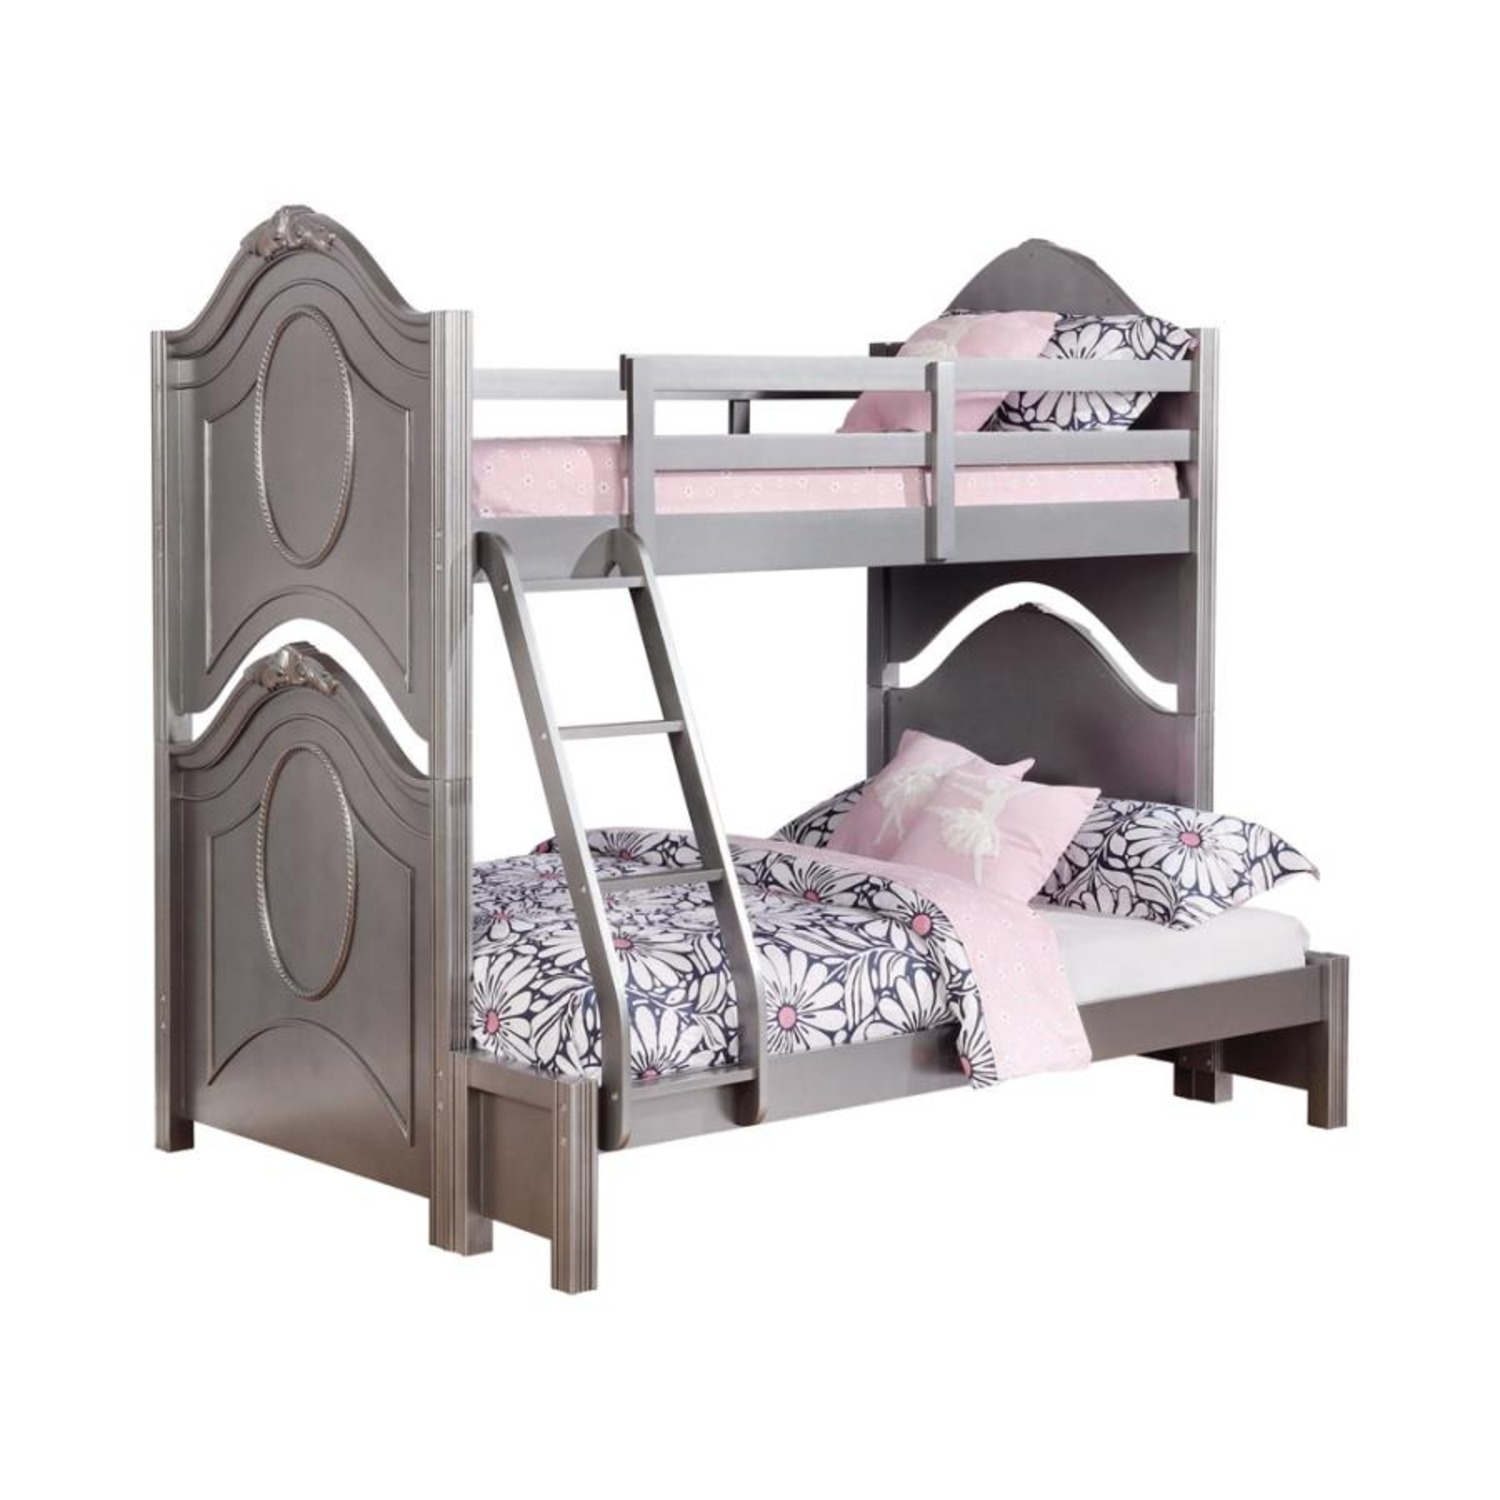 Twin Over Full Bunk Bed In Metallic Pewter Finish - image-0